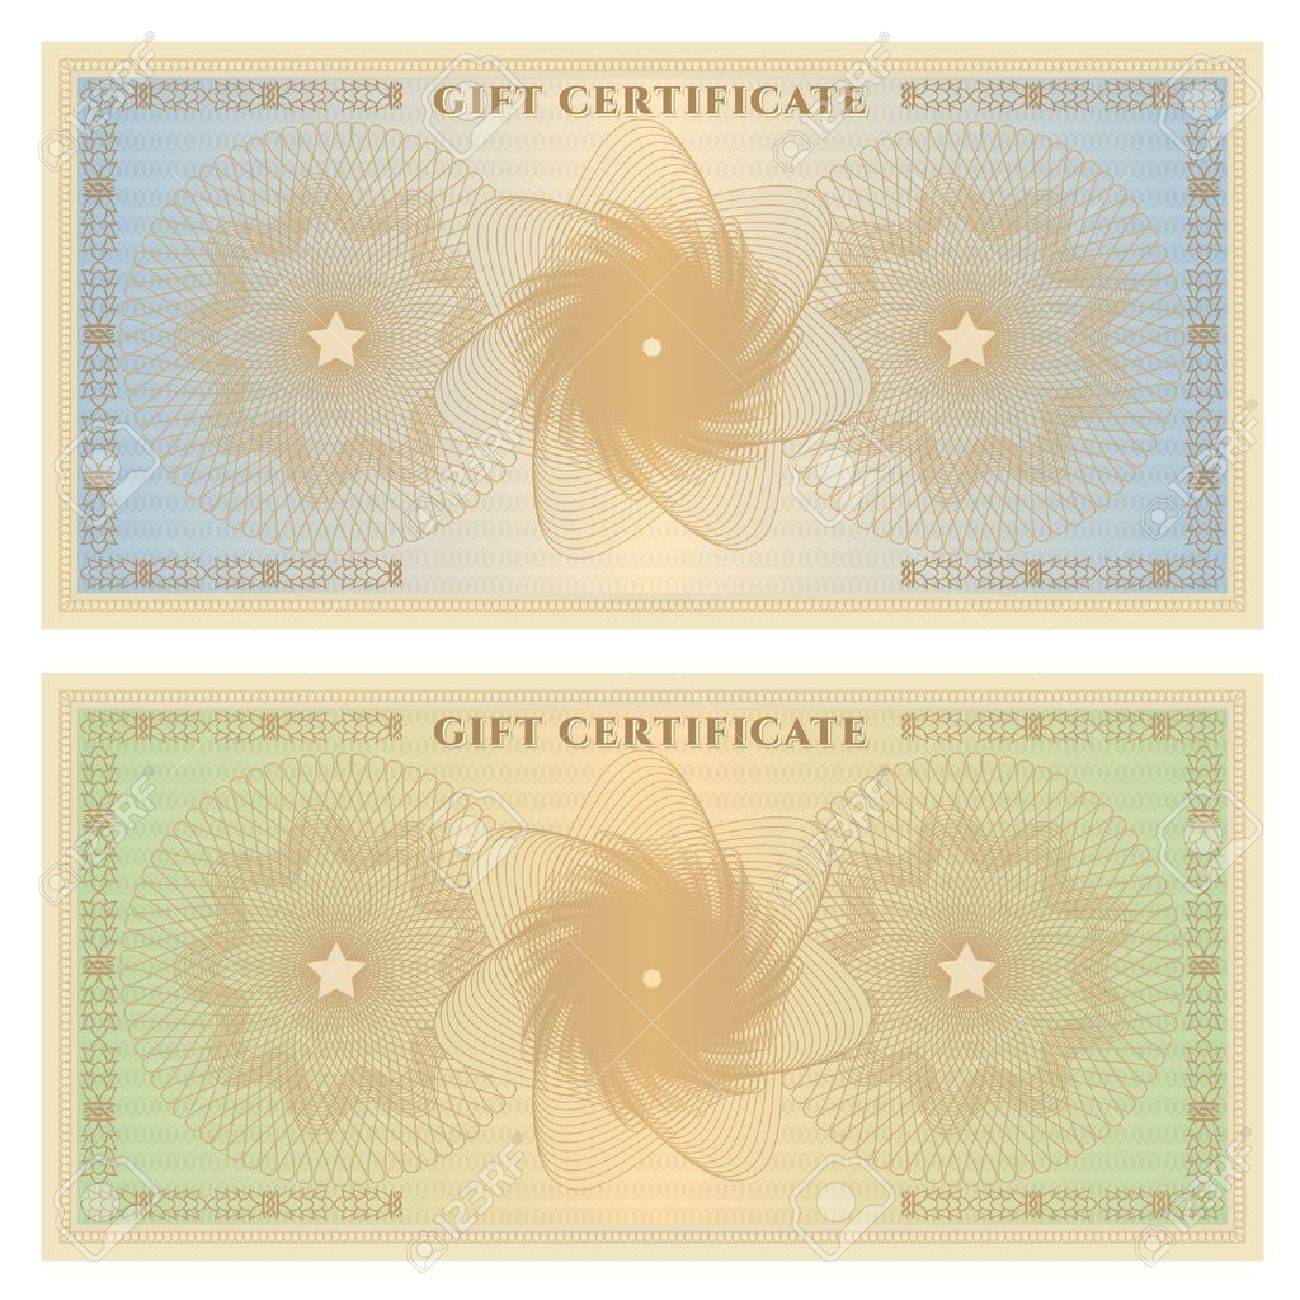 Gift certificate  Voucher  template with guilloche pattern  watermarks  and border  Background for coupon, banknote, money design, currency, note, check in vintage colors  green,blue Stock Vector - 19791173